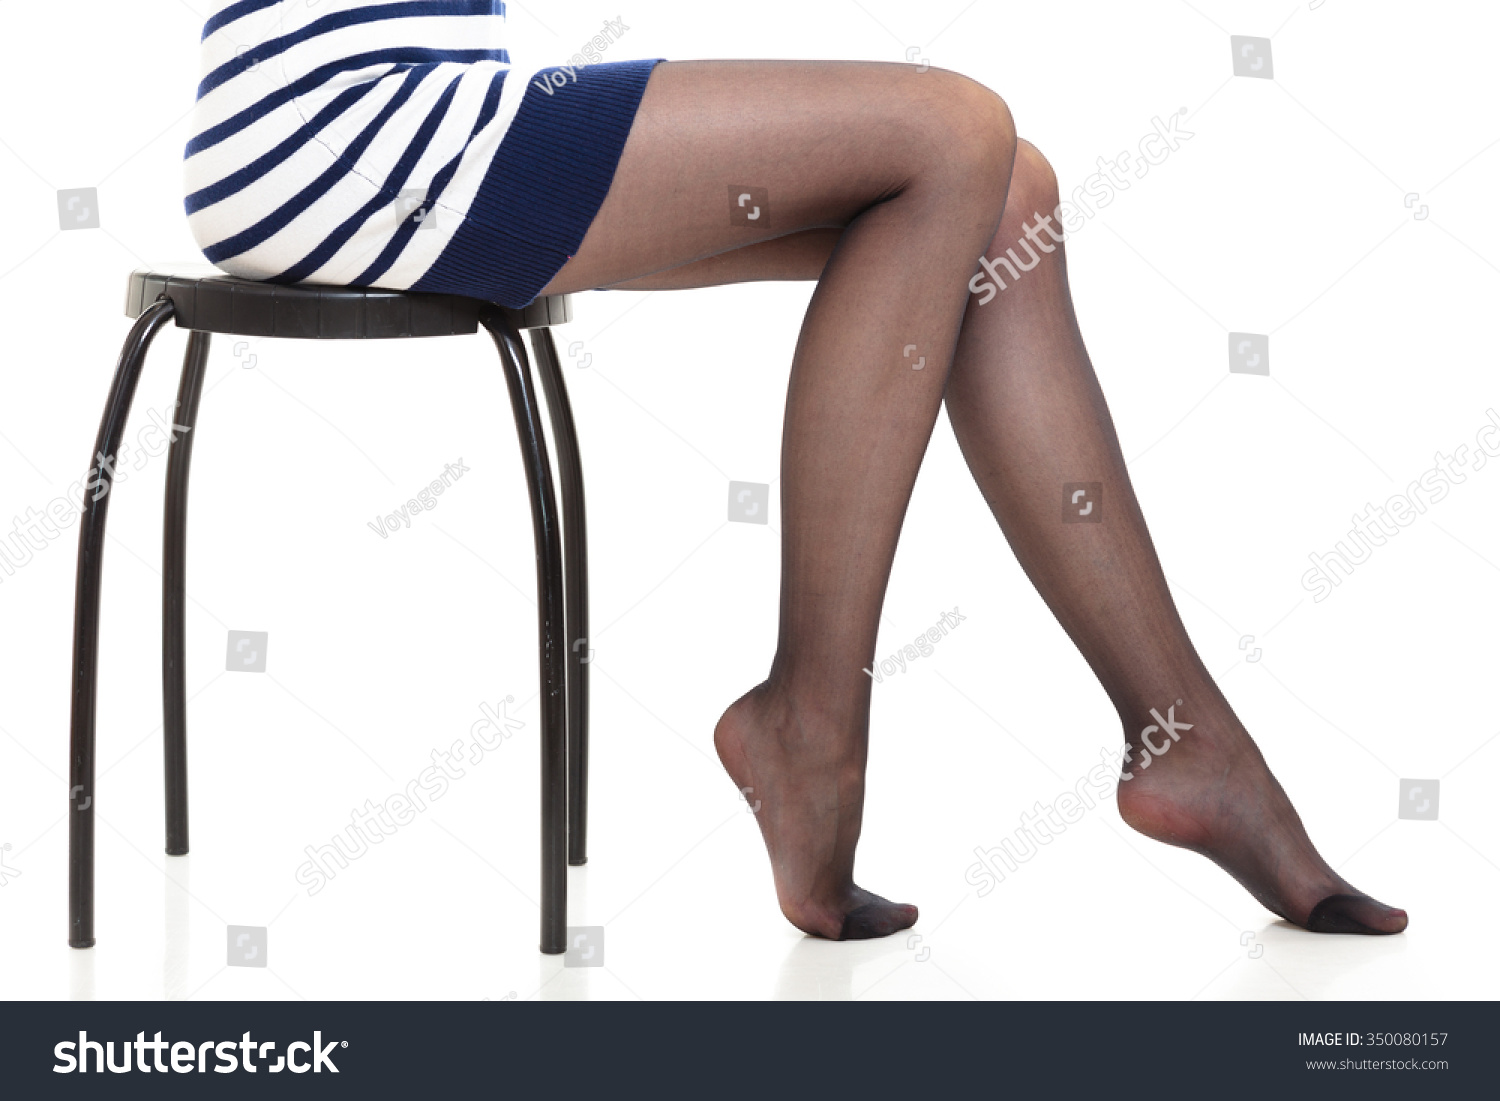 2c0042002d750 Beauty woman legs in black tights. Part body of slim attractive girl  wearing striped dress